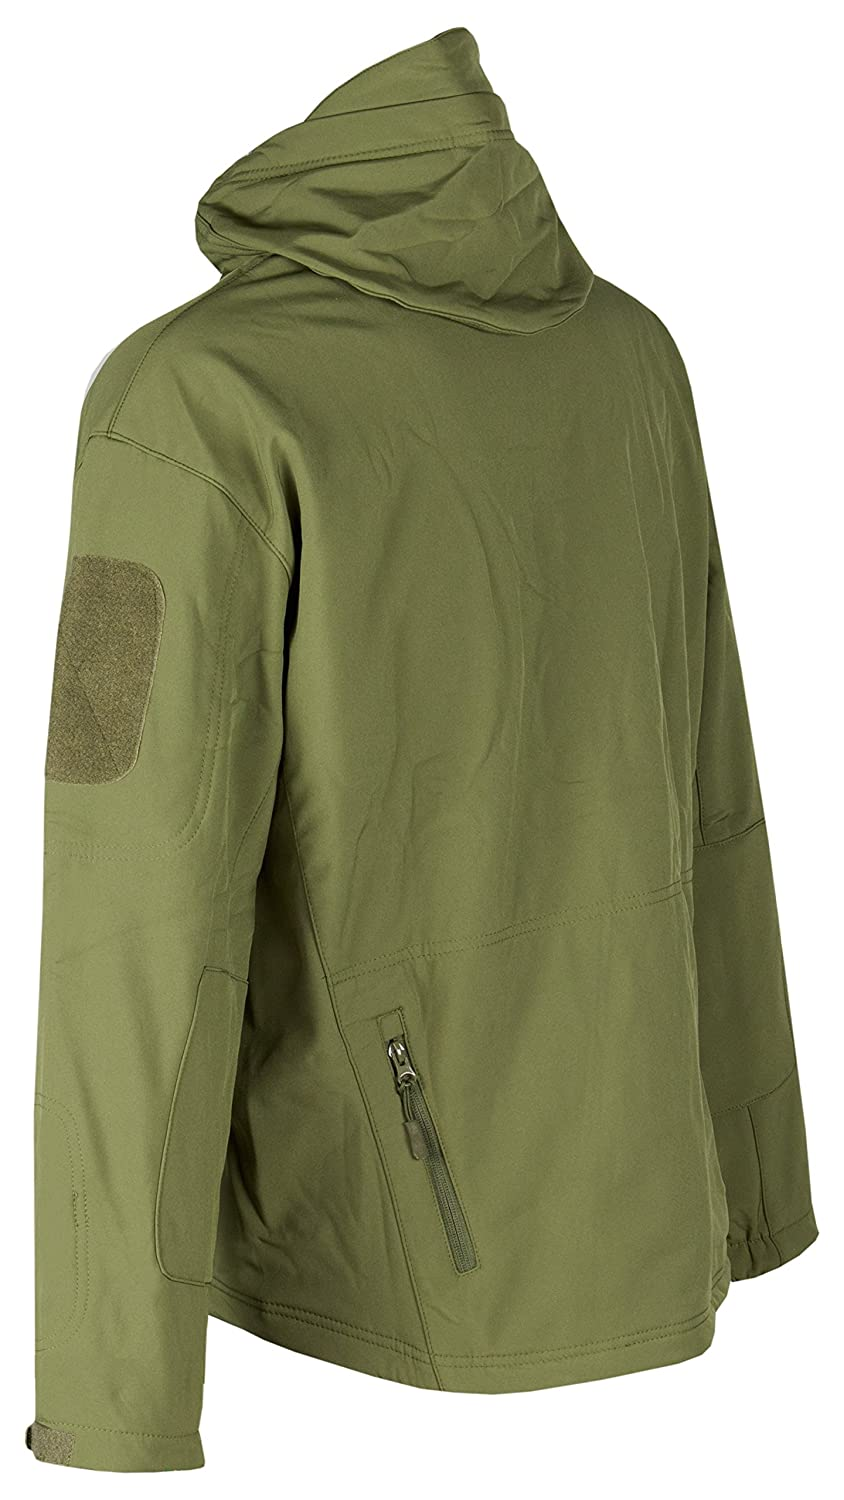 Army Style Chaqueta Tactica Militar para Hombre para Airsoft /& Paintball Green OD ACE Tactical Softshell Jacket Talla M